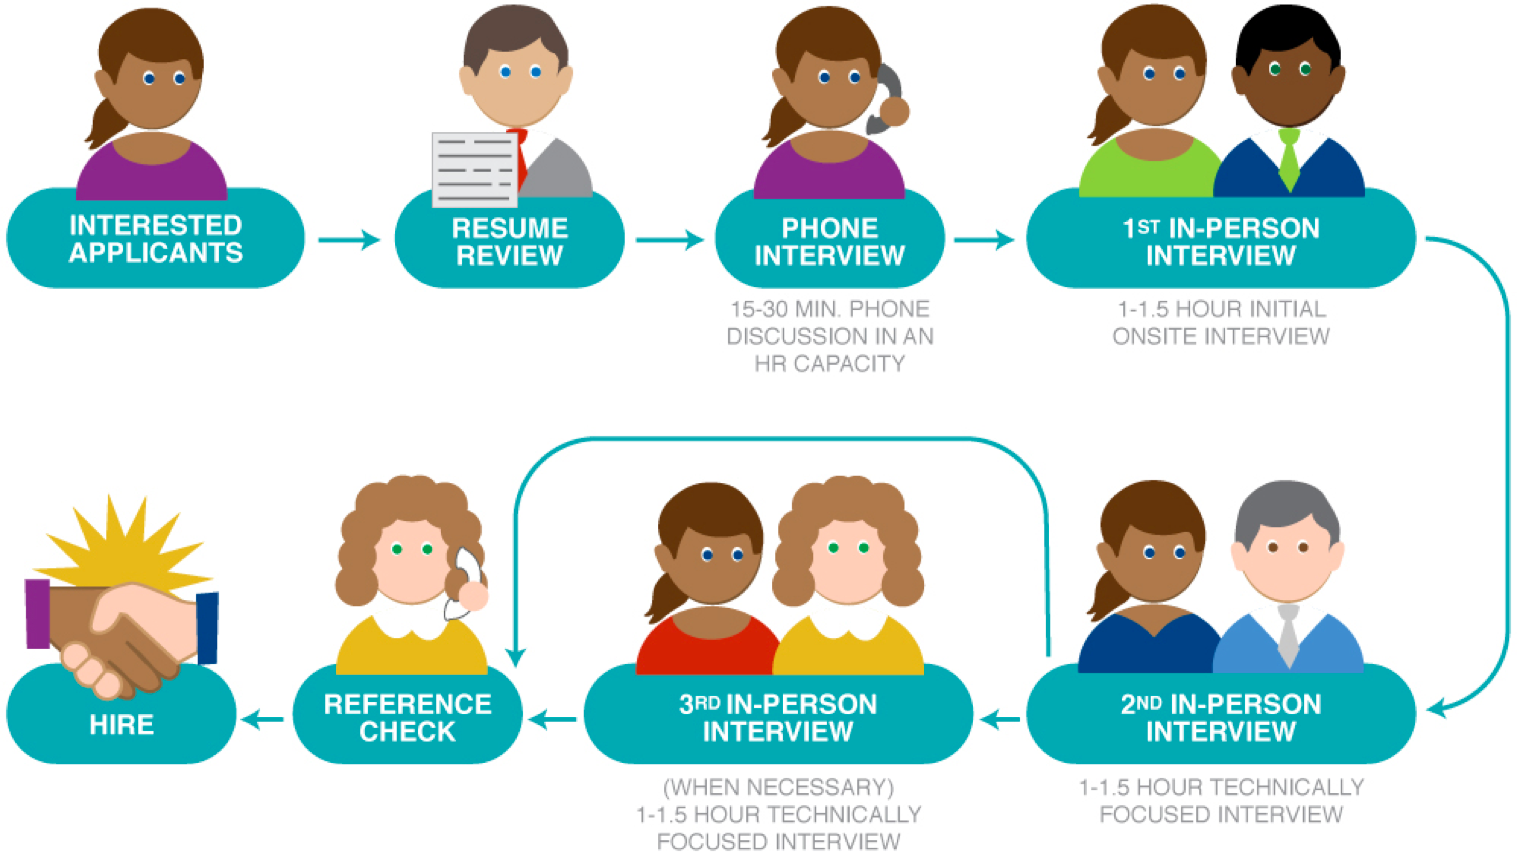 tip 3 have a structured interview process